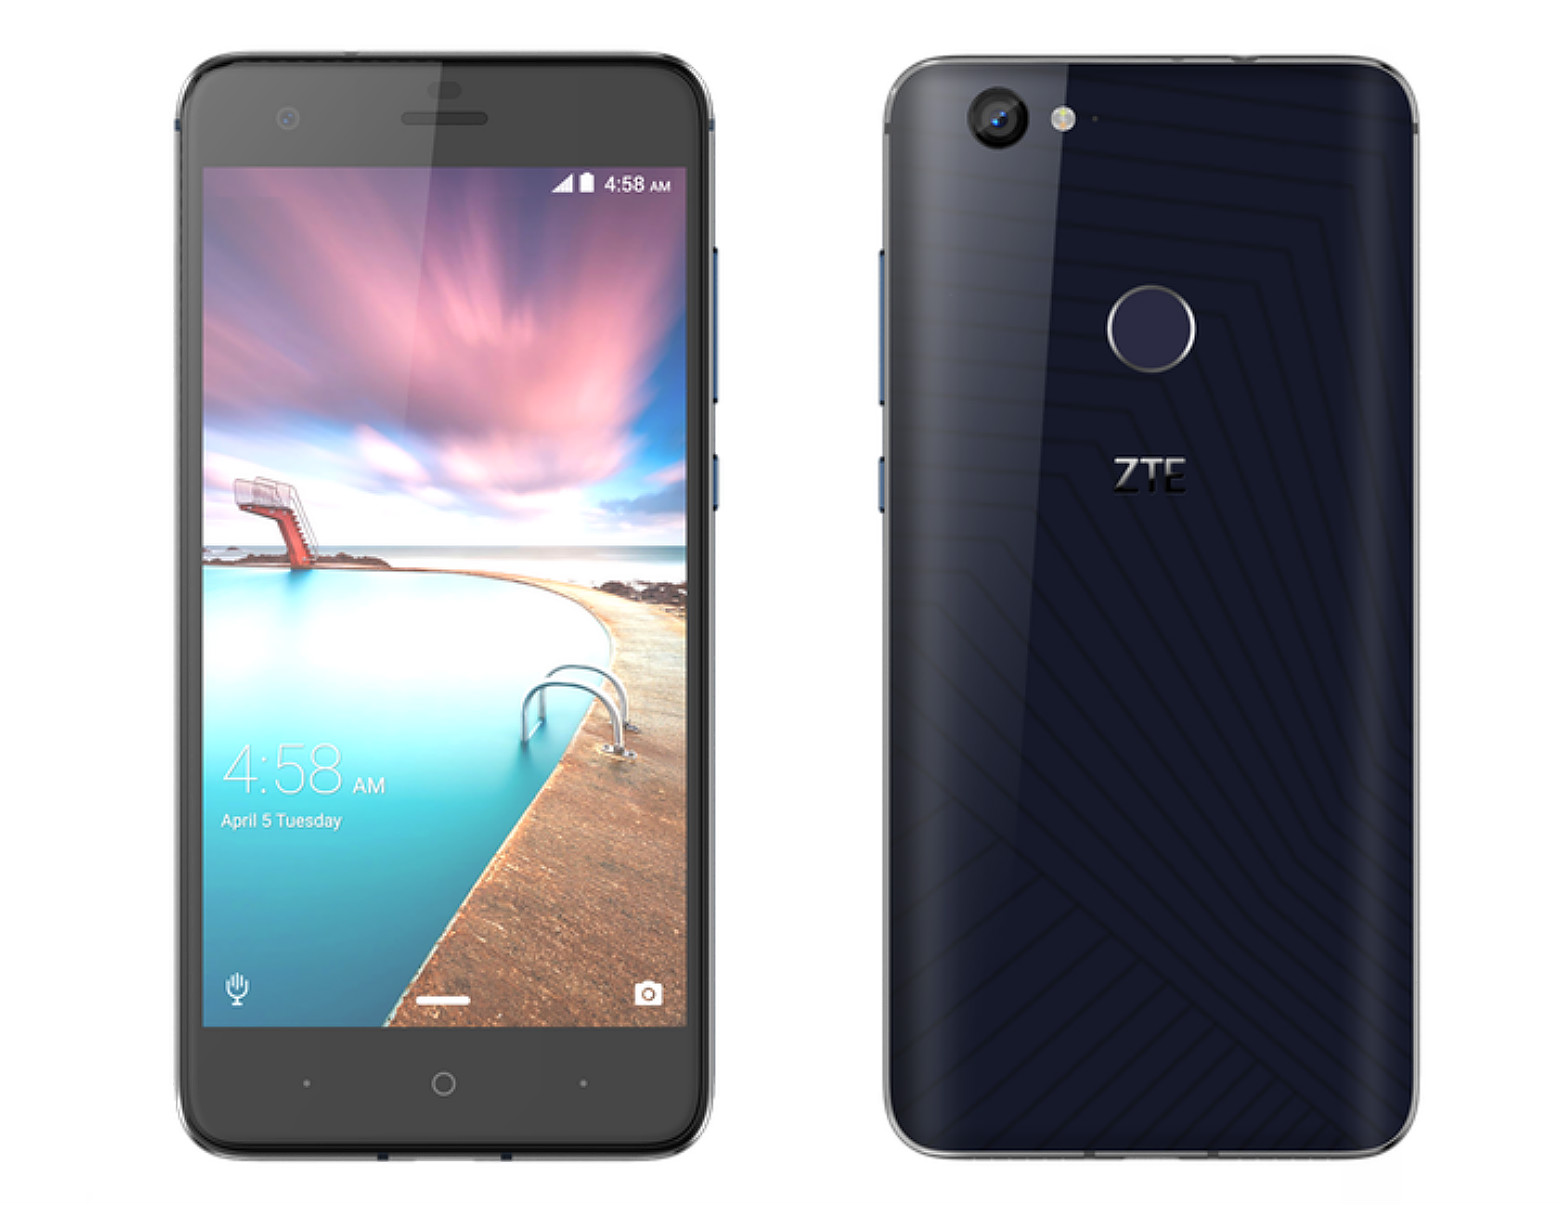 princess awaits, zte mobile manufacturer has specs